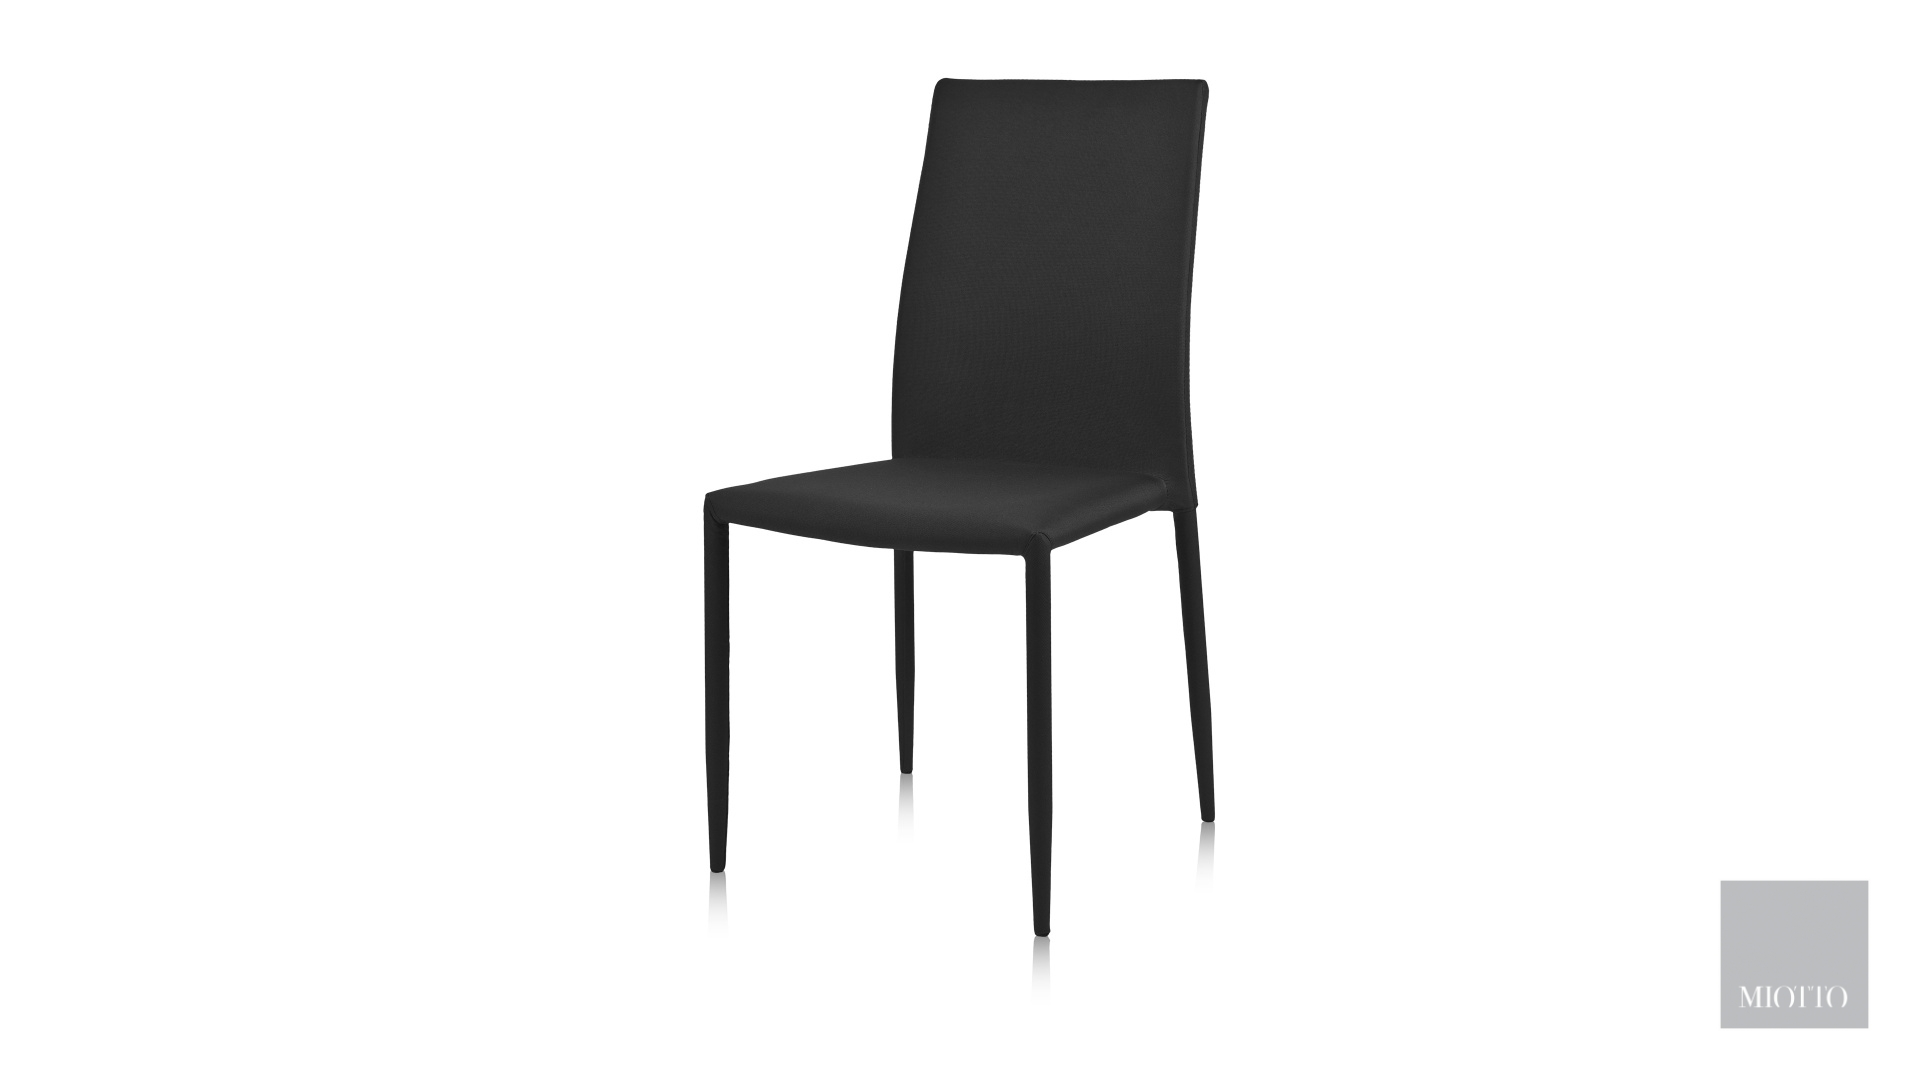 miotto_Lara fabric dining chair black miotto furniture